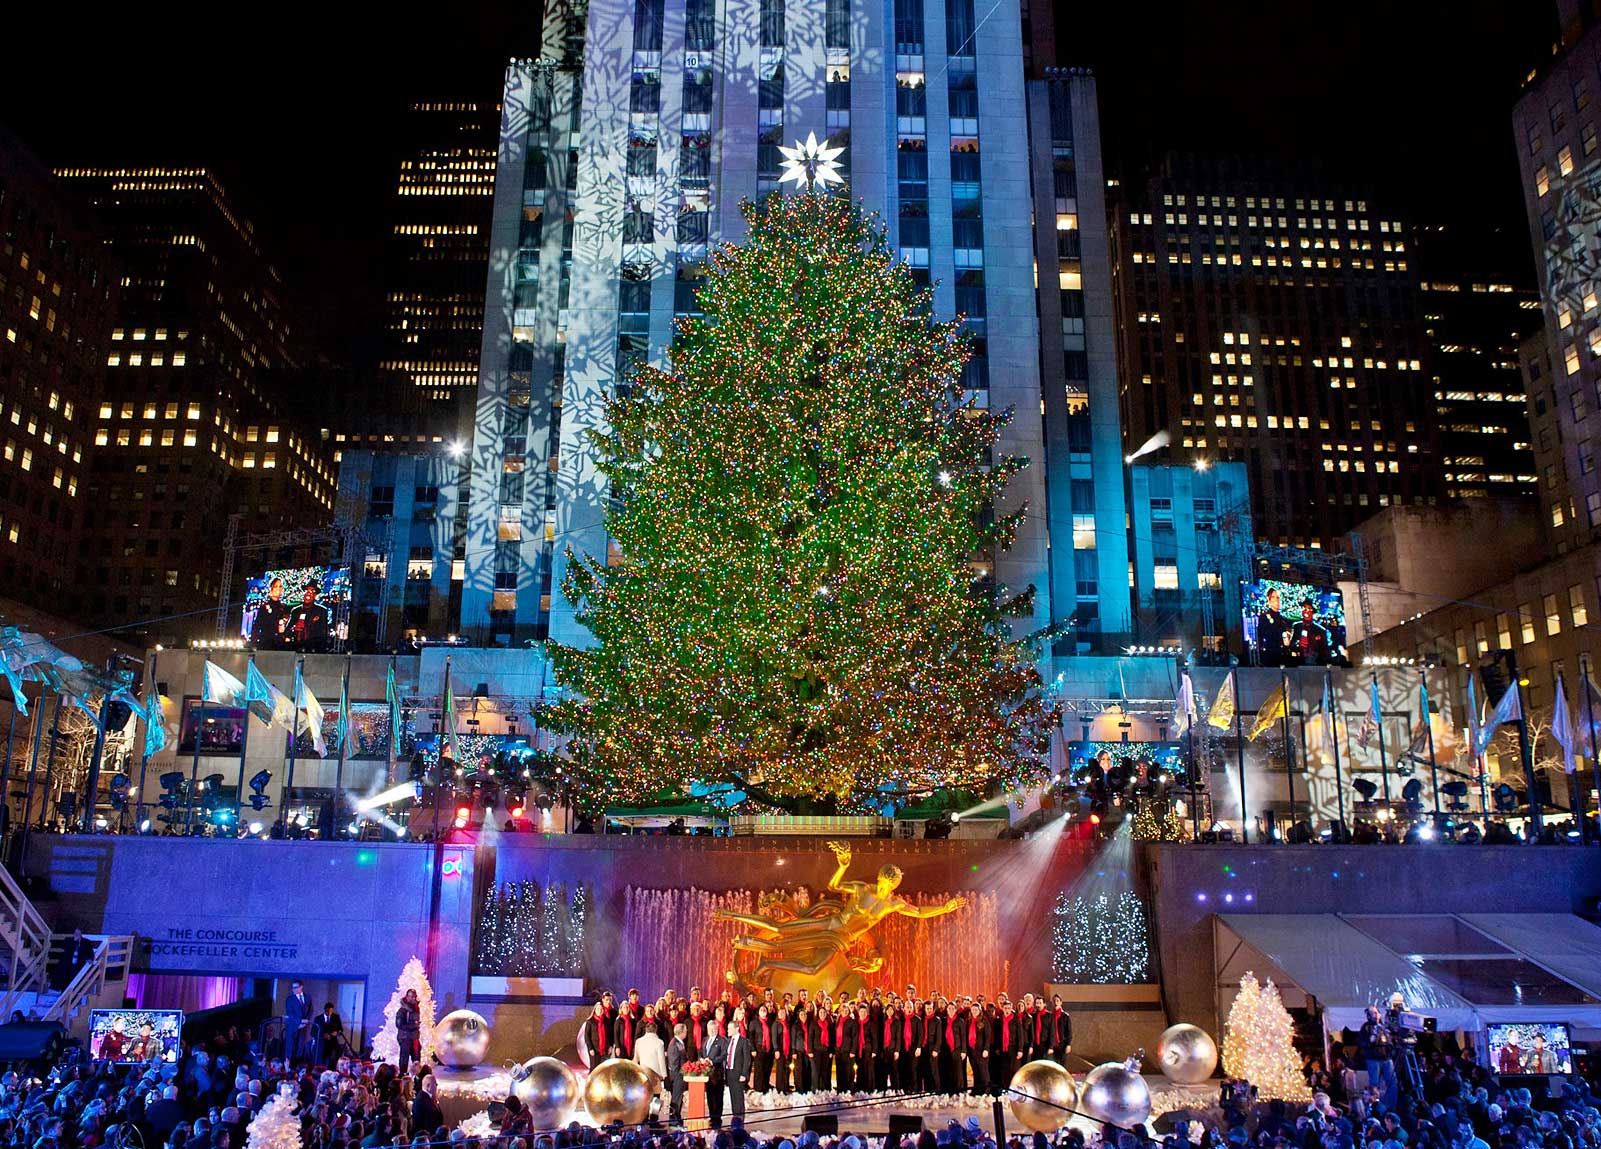 Christmas in New York 2019 - Rockefeller Center Christmas Tree